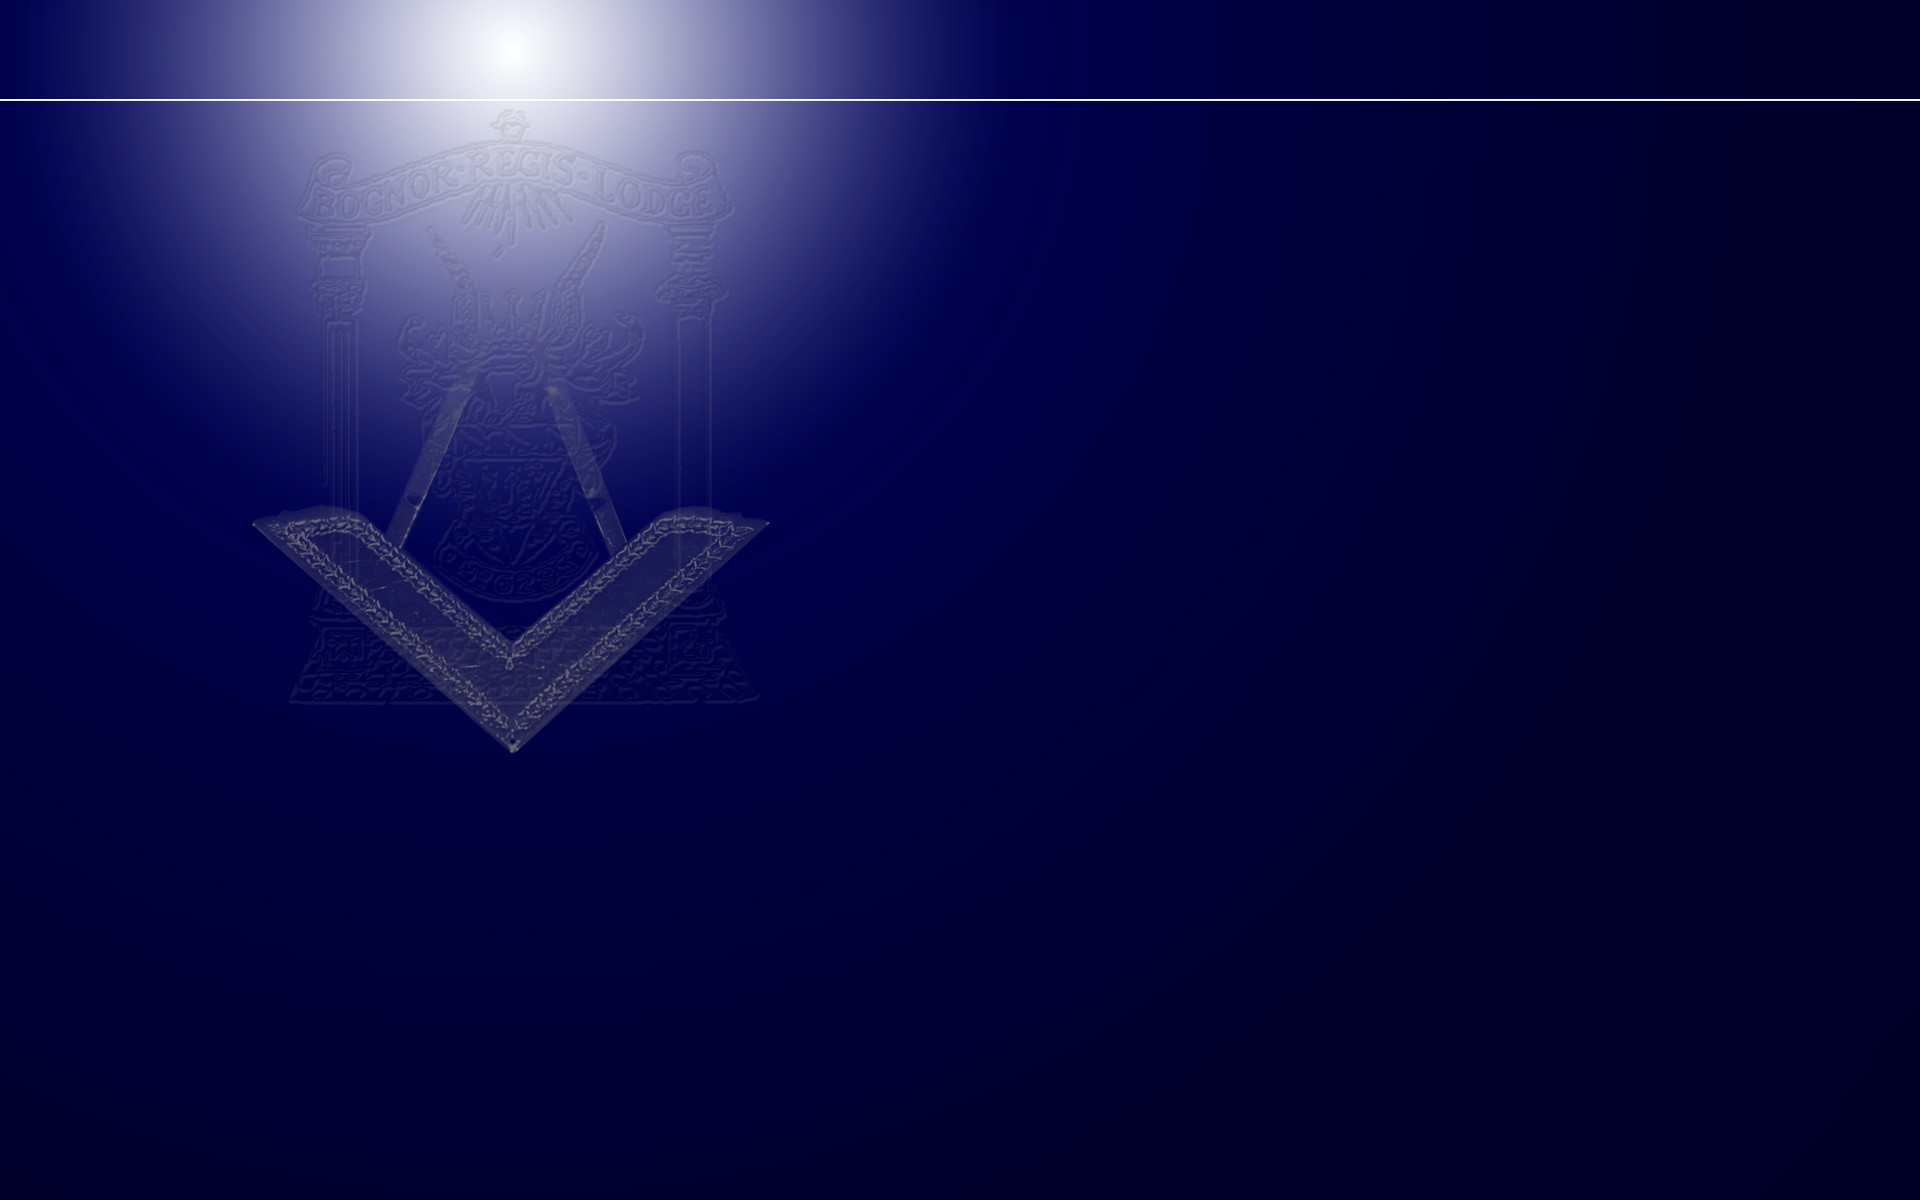 People have their own reasons why they enjoy Freemasonry.